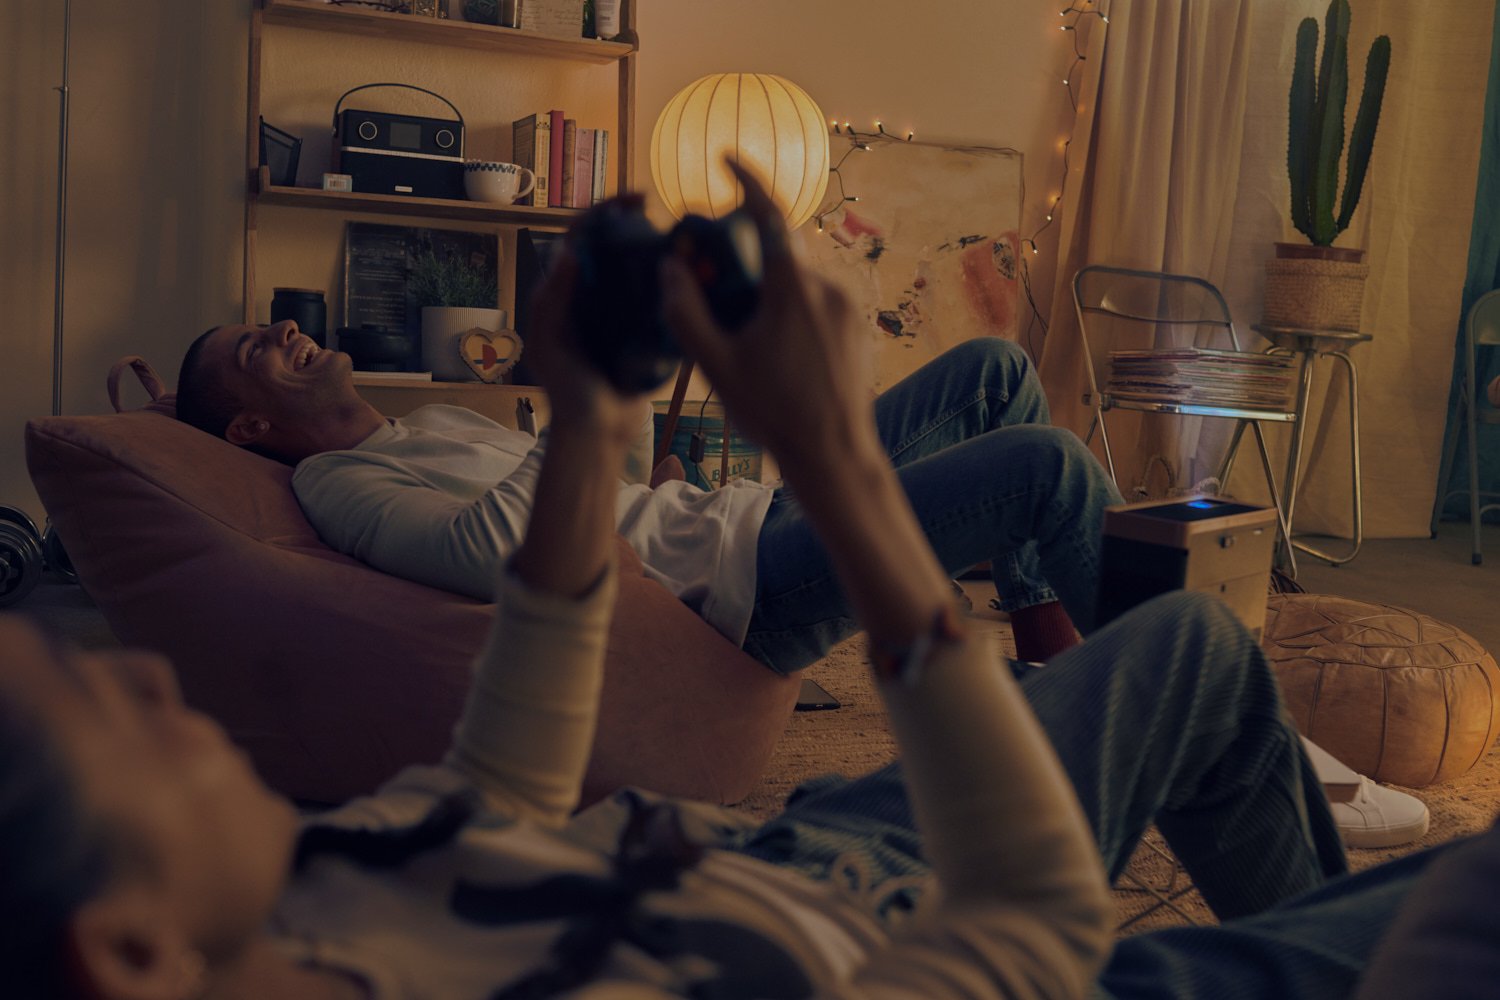 lifestyle photographer TIm Cole shoots two people enjoying playing video games